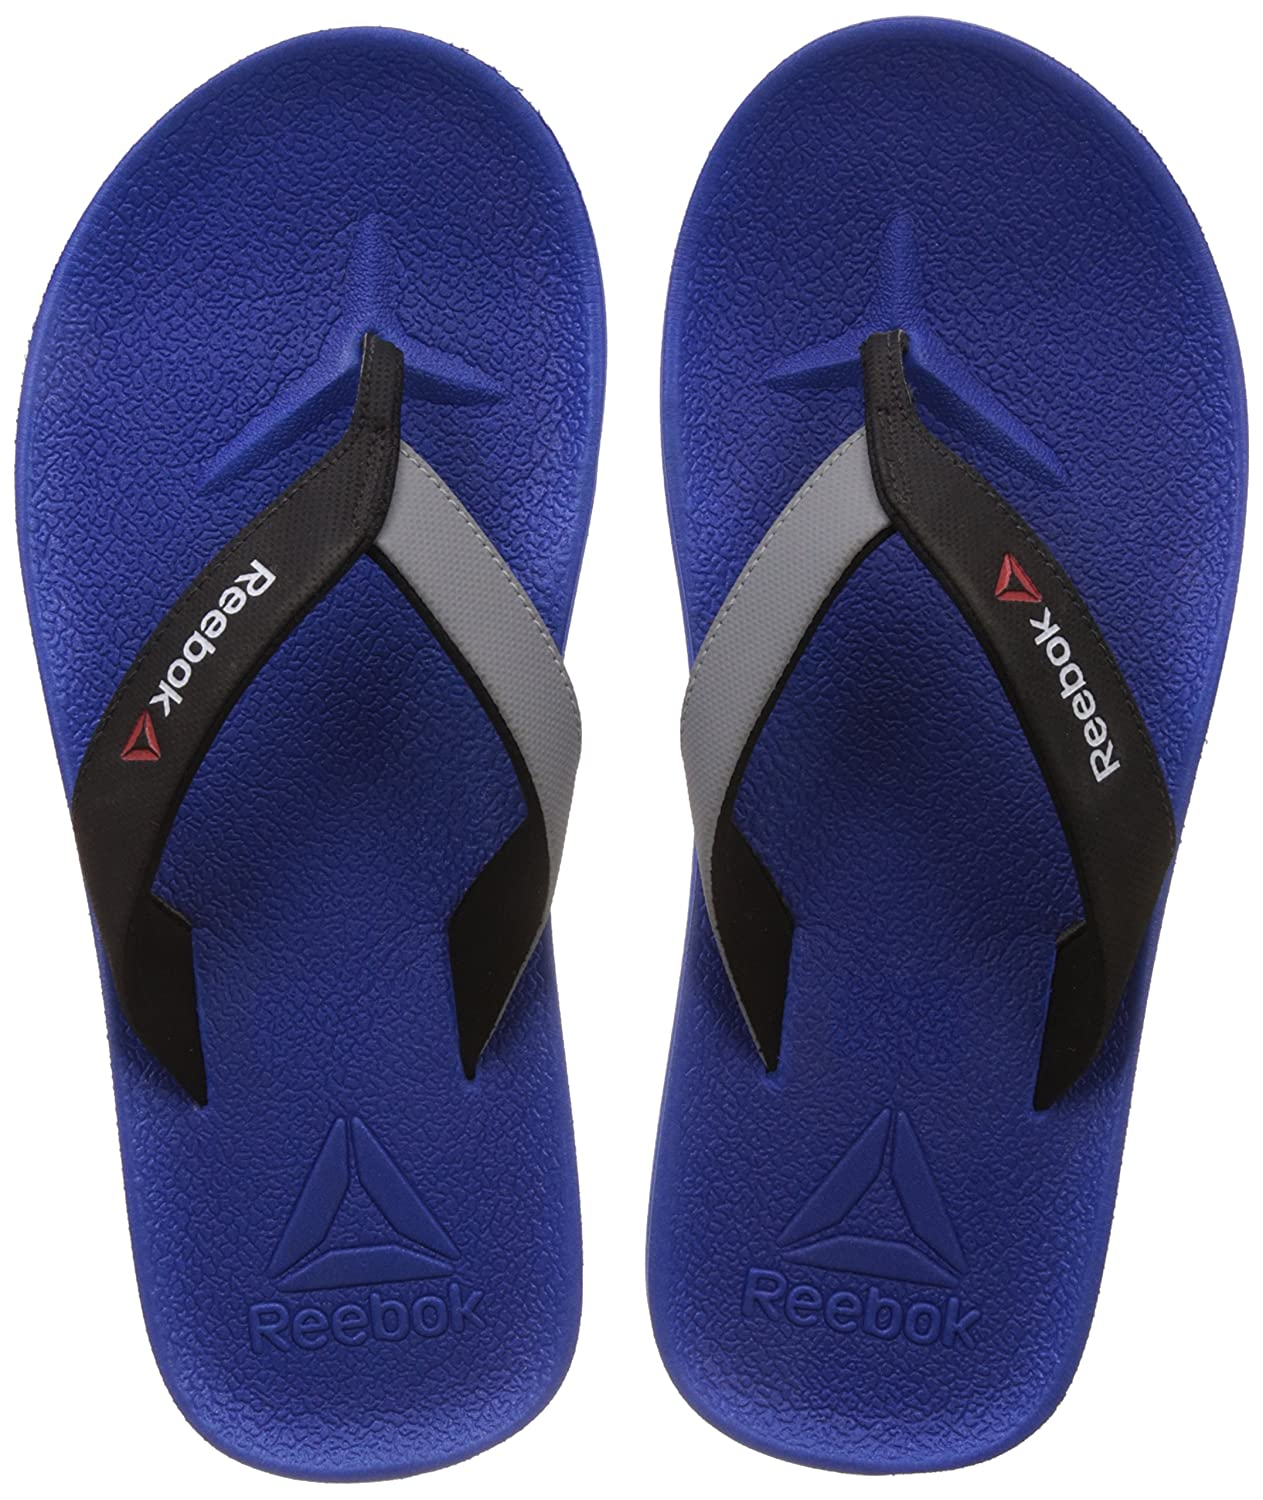 8ba2dffe845c0 Reebok Men's Adventure Flip Awesome Flip-Flops and House Slippers